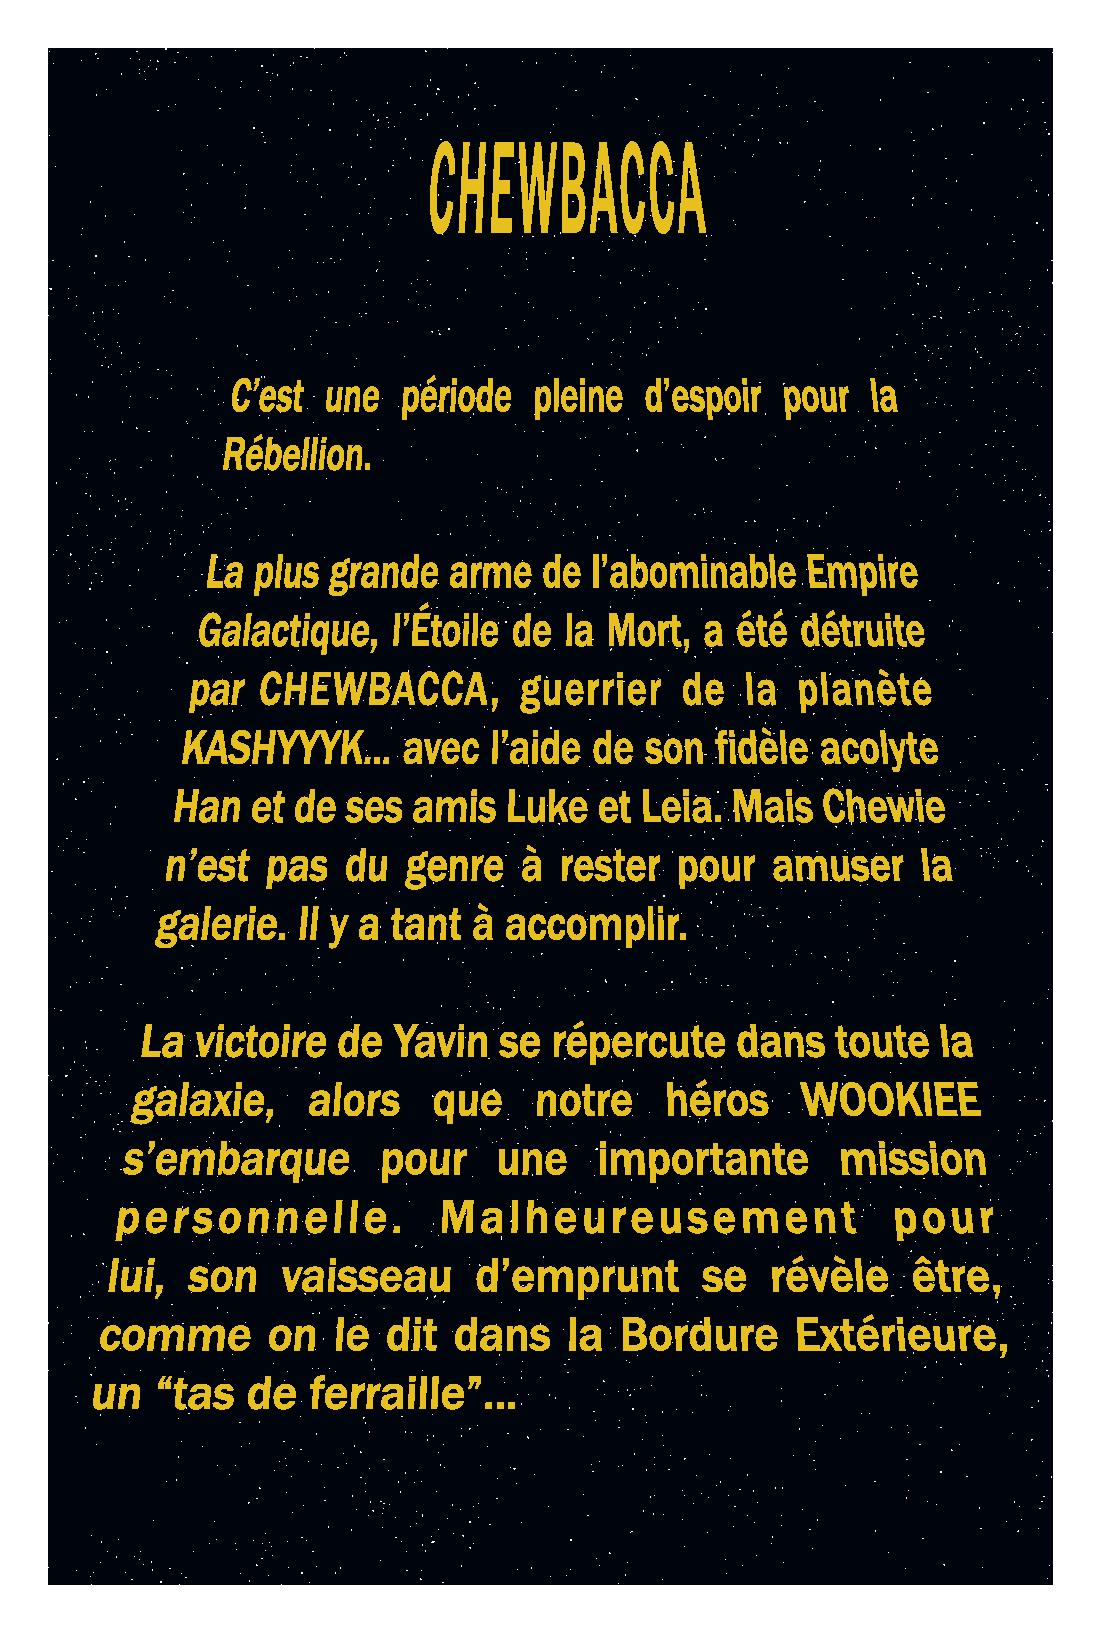 Star Wars Chewie - Preview 1